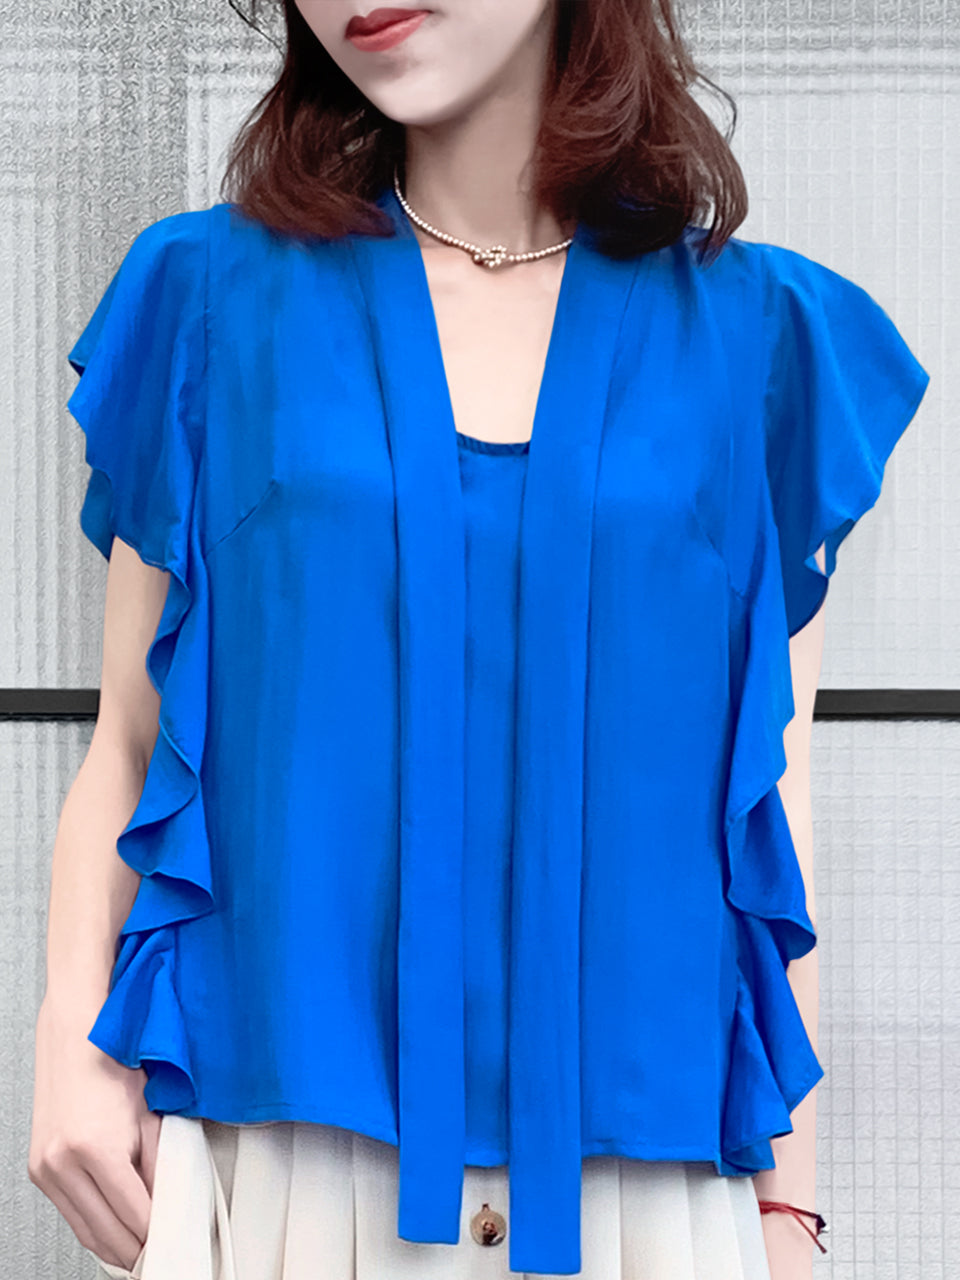 Surprise Sale! Vivid Blue Frills Ruffle Tie Neck Silky Top